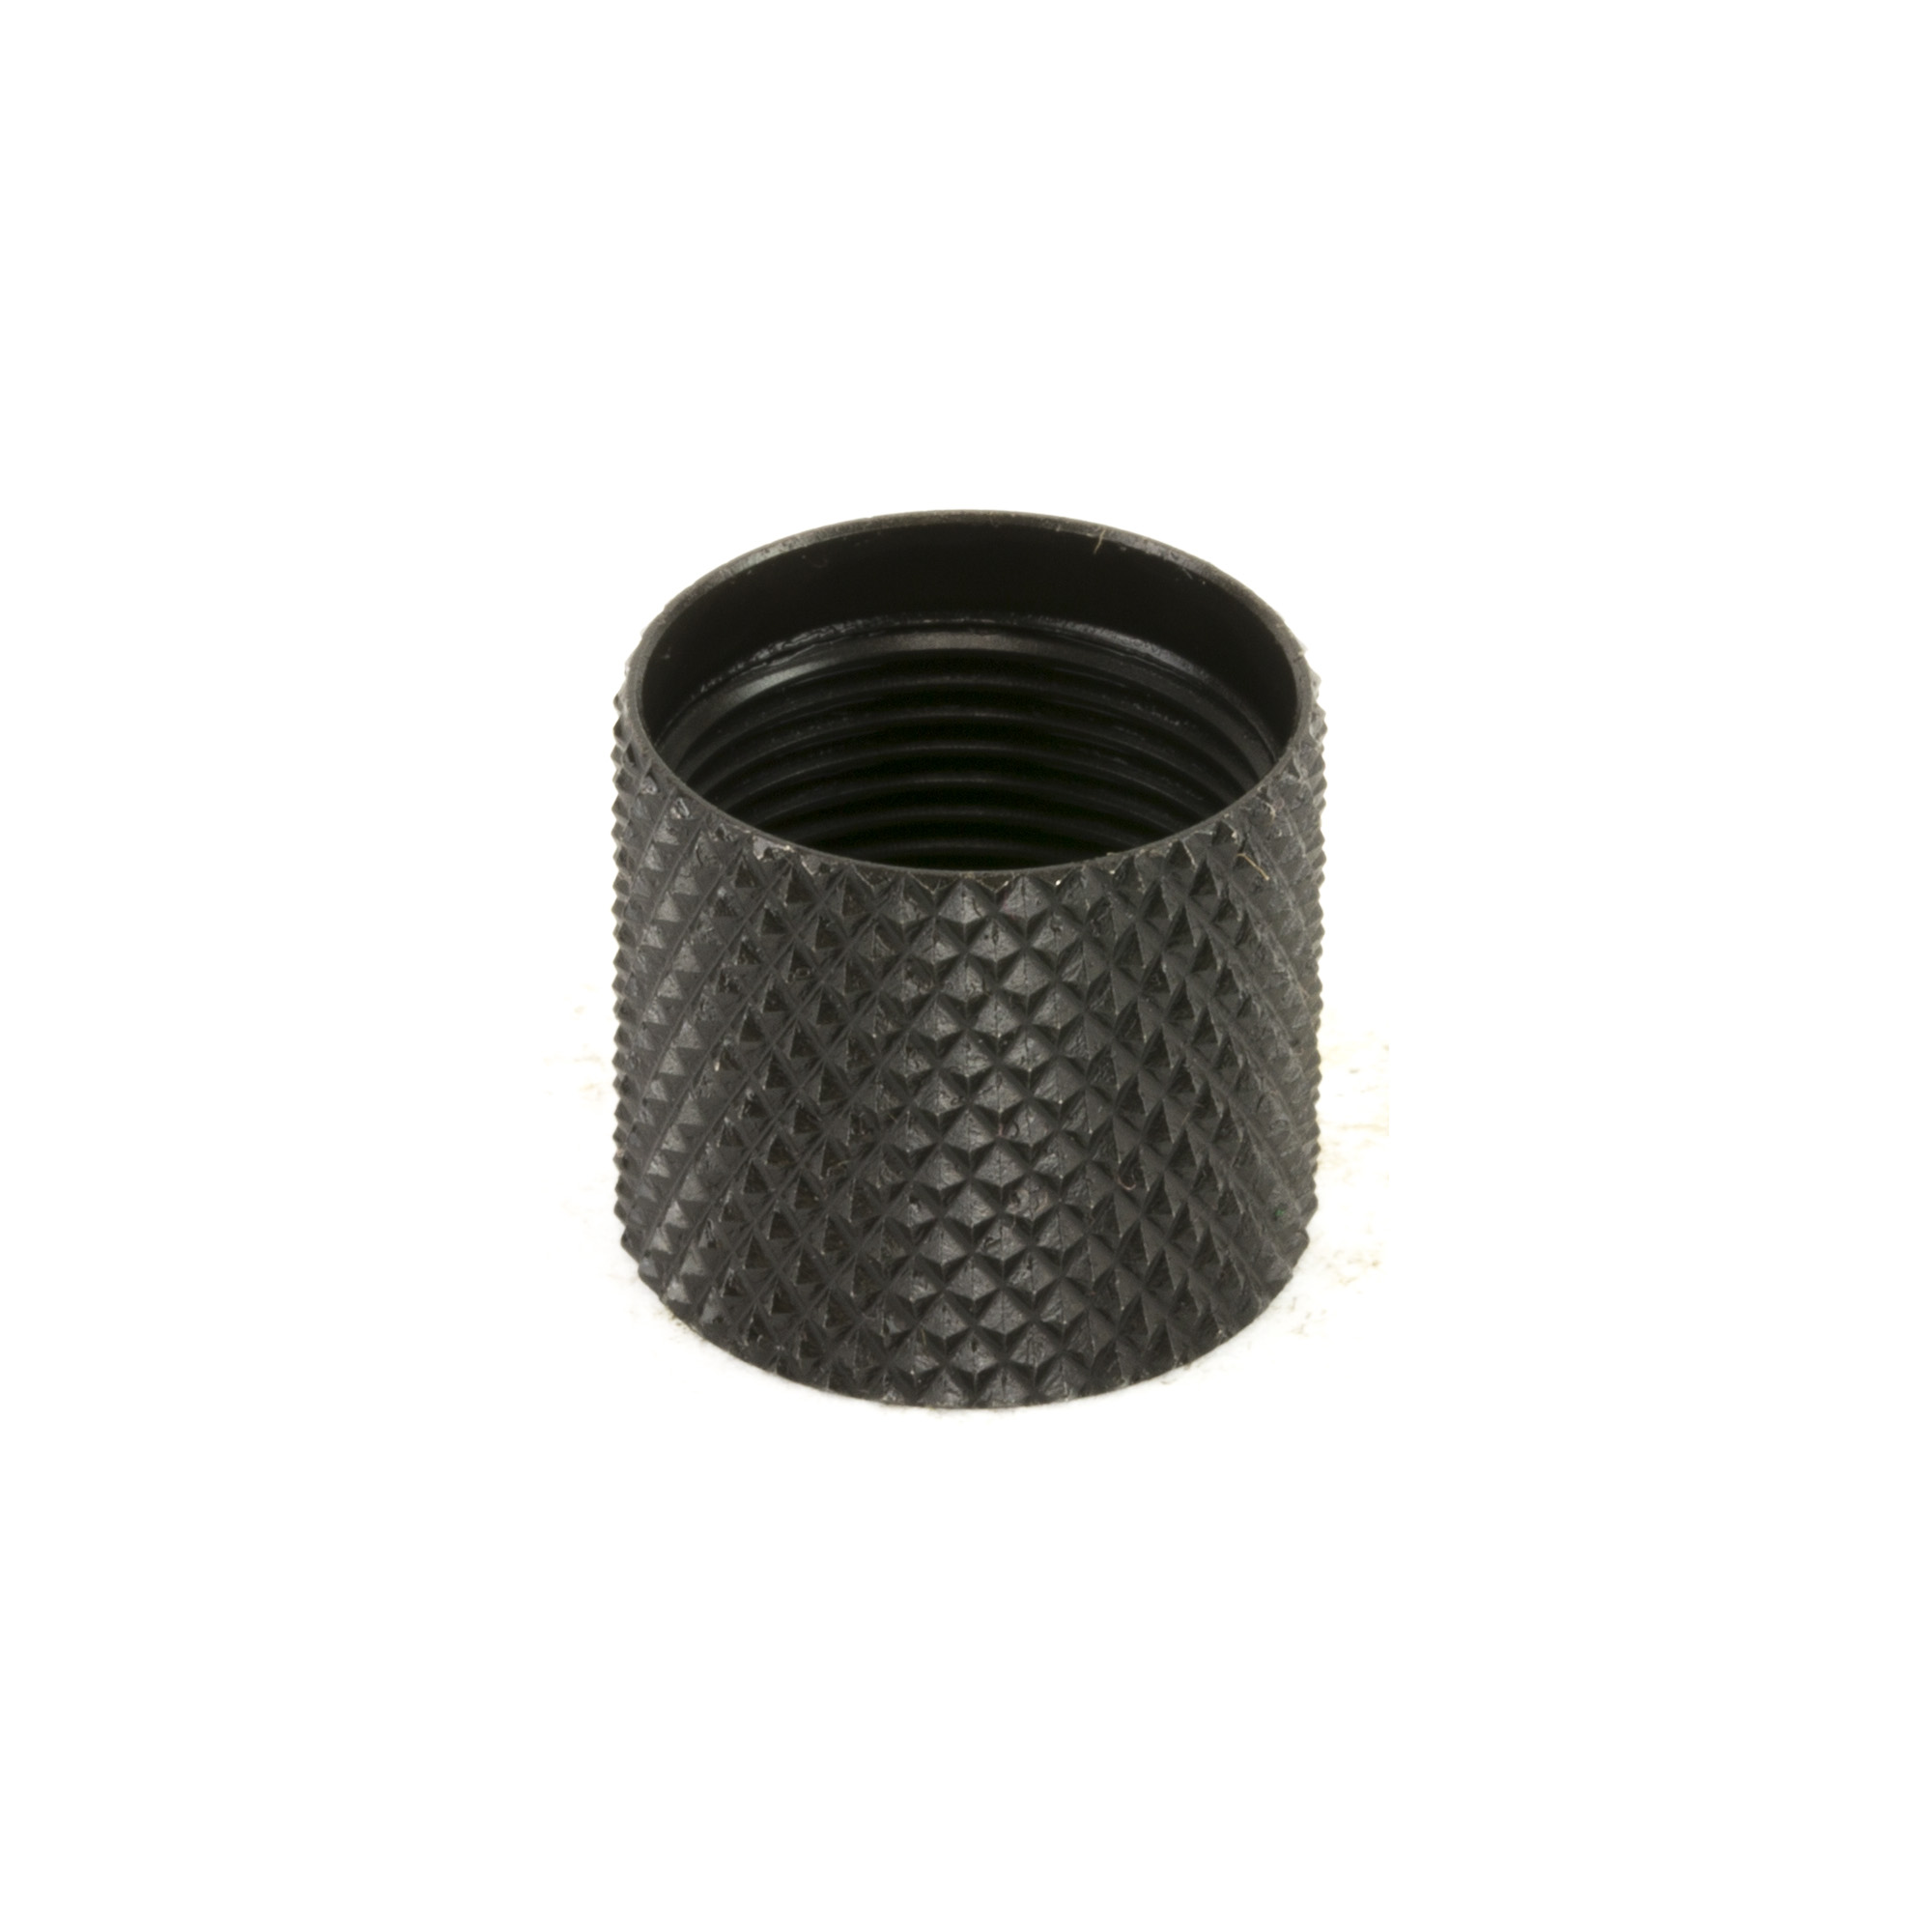 These steel thread protectors will prevent damage to the threads of your pistol barrel when a muzzle device is not installed.